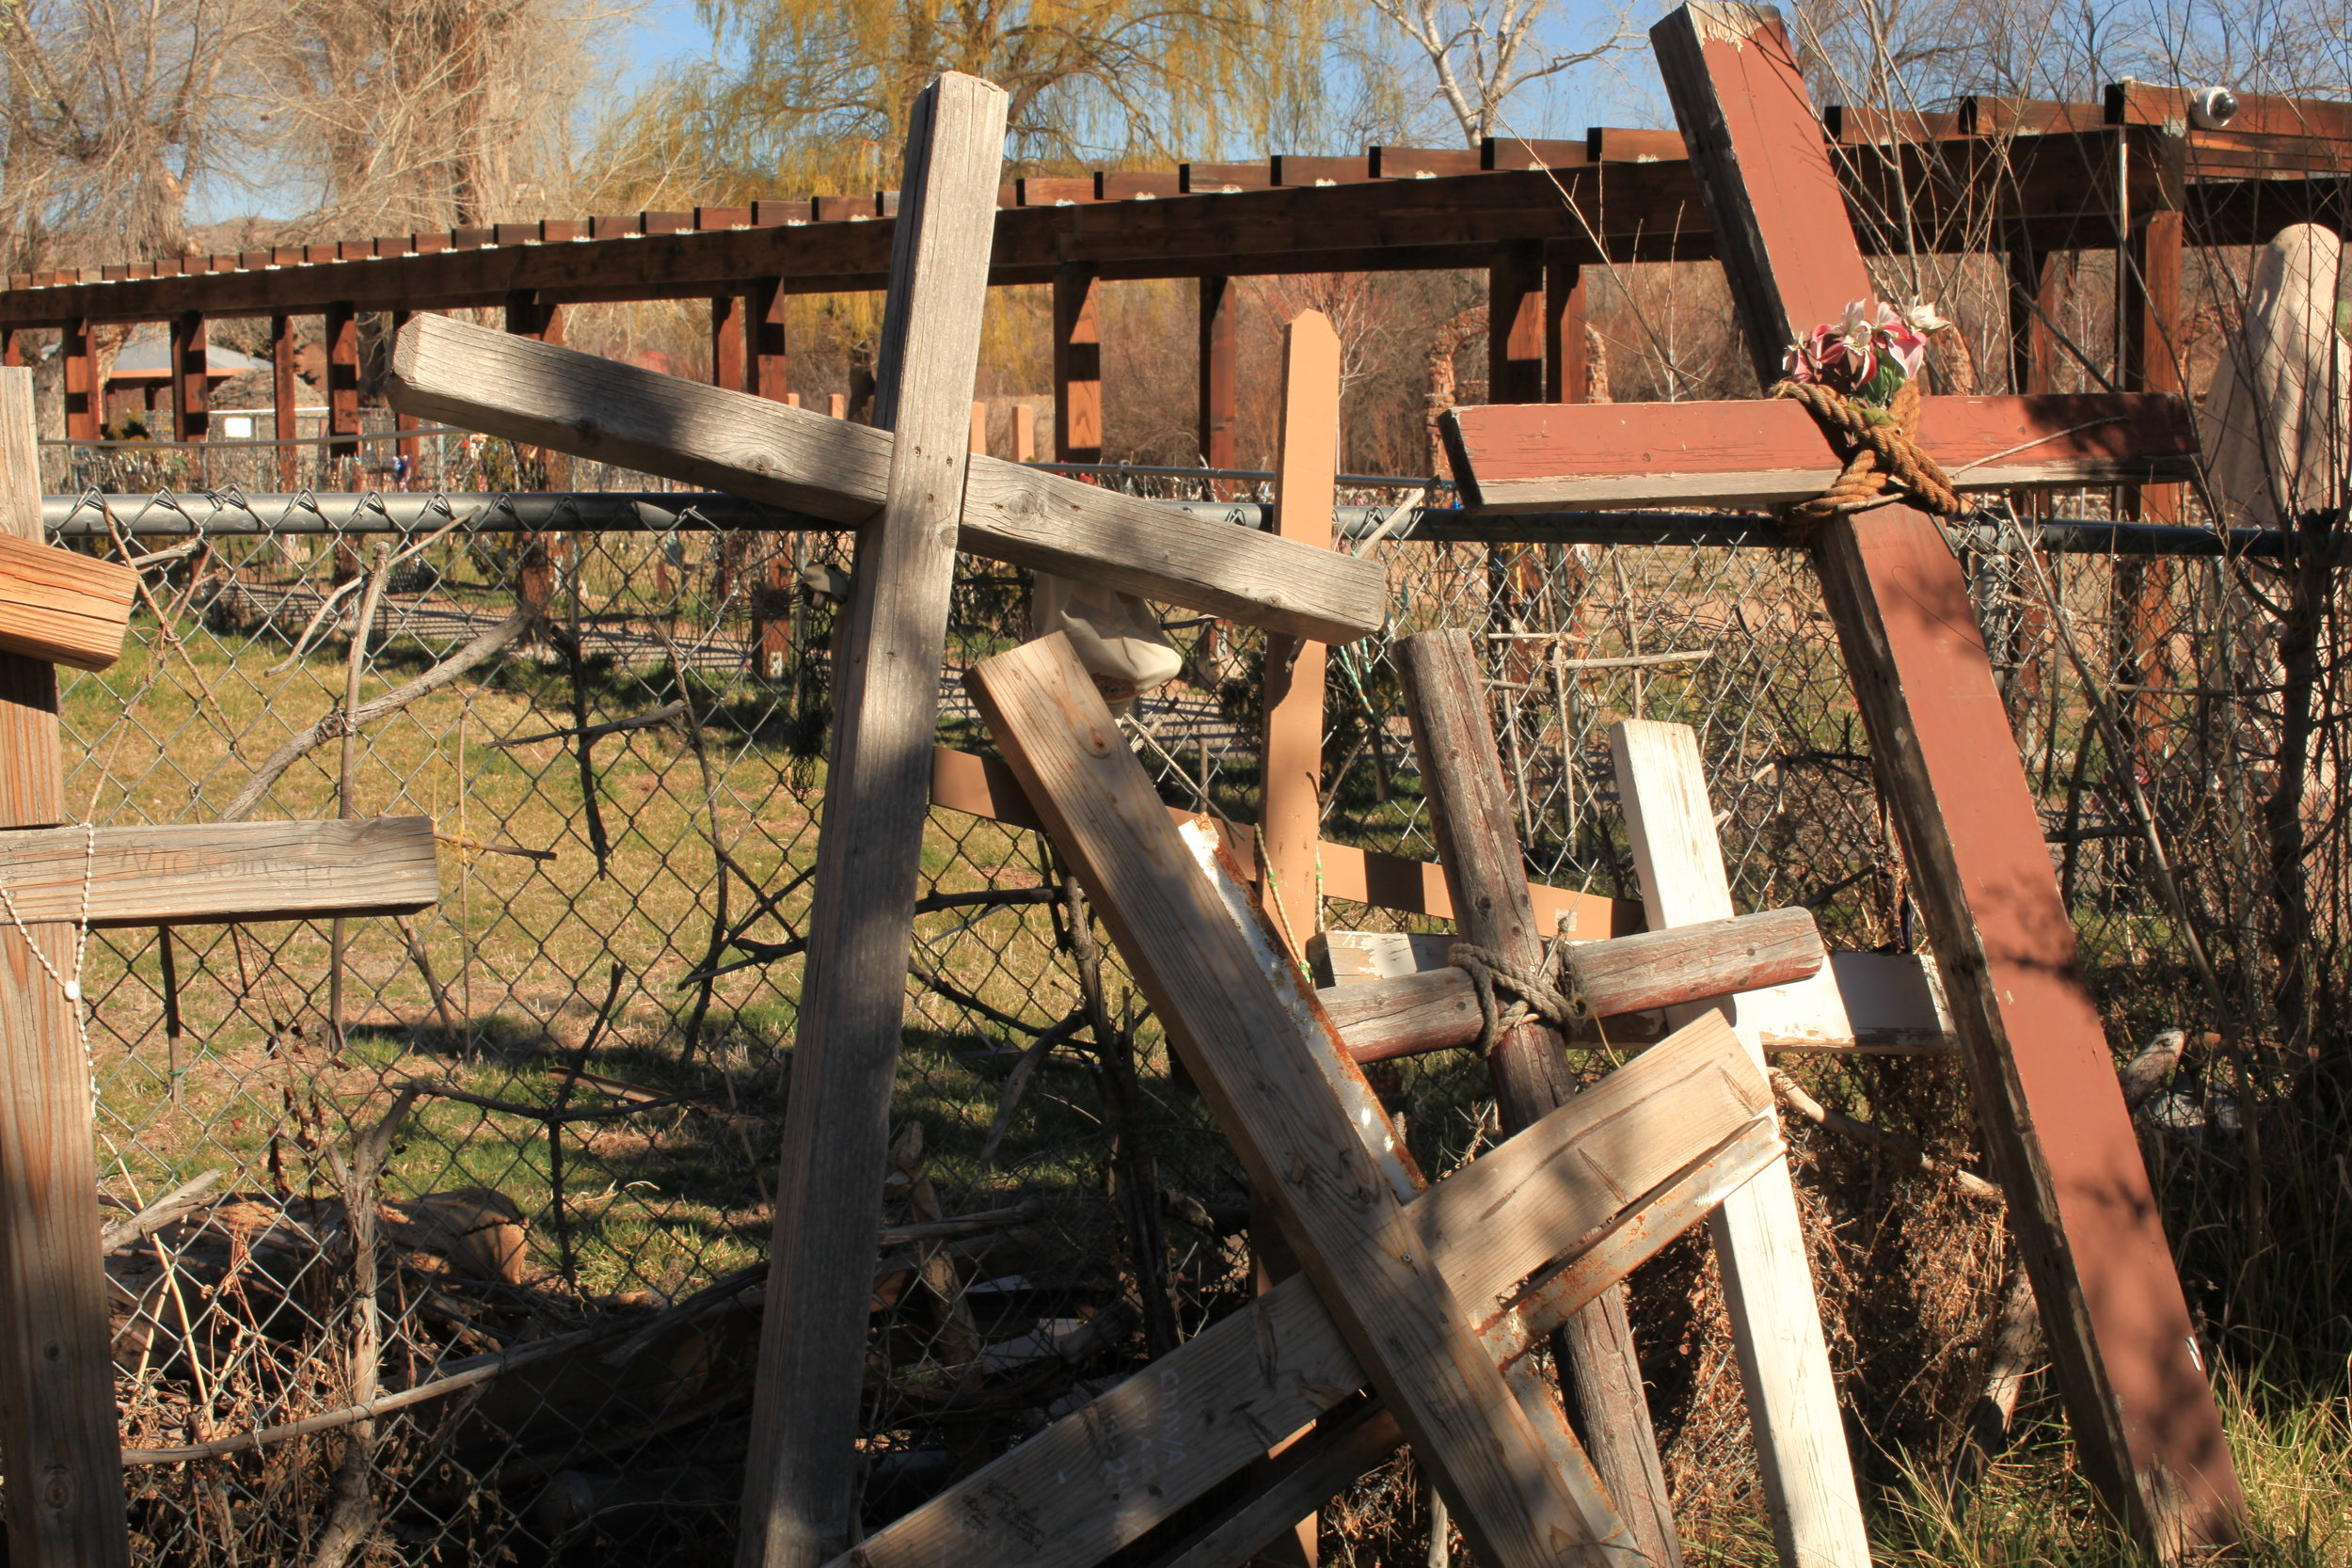 Crosses carried by pilgrims to Chimayo.